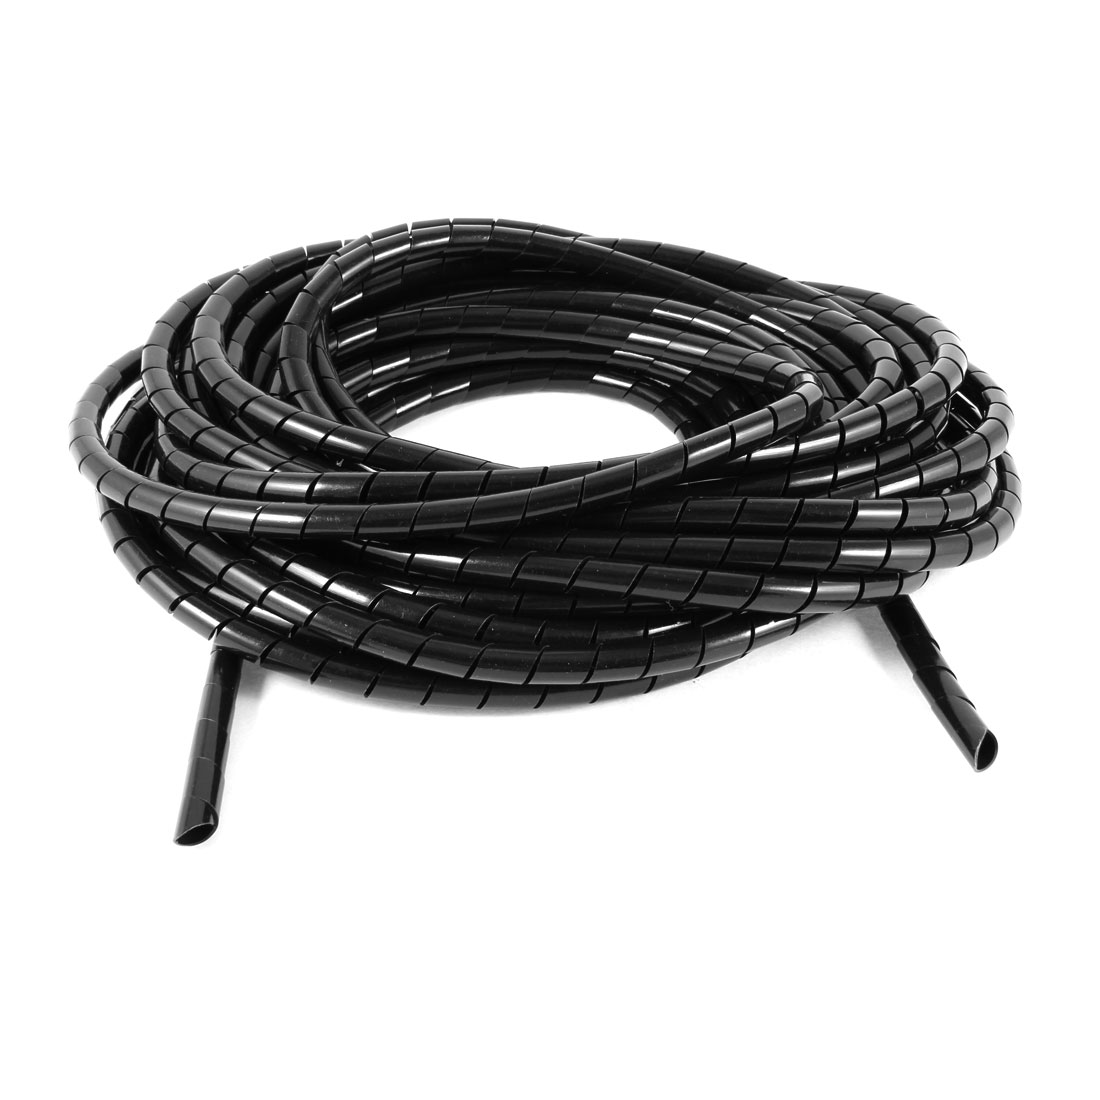 10Meter Long PE Polyethylene 10mm Spiral Cable Wire Wrap Tube Black